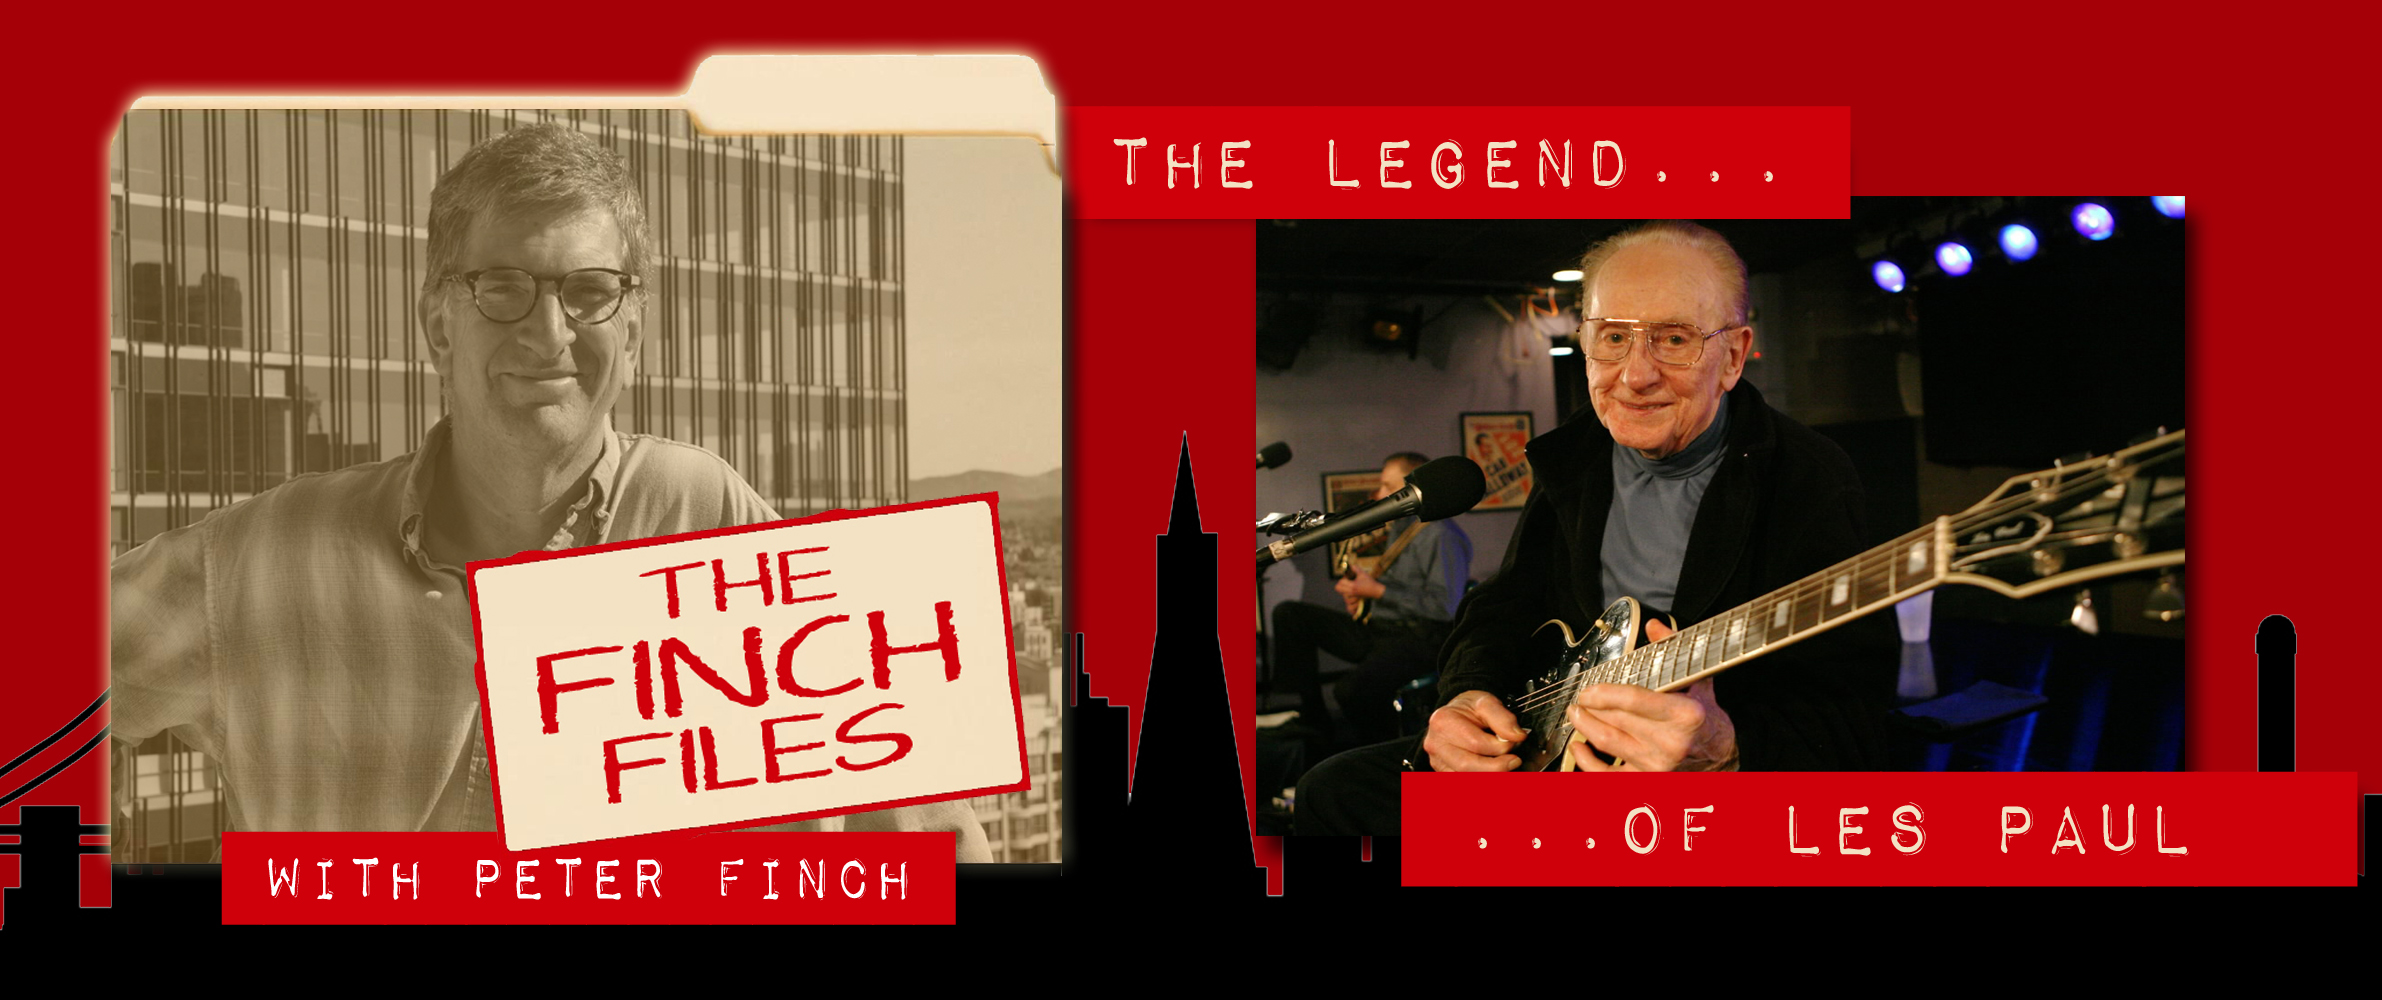 The Finch Files: The Legend of Les Paul